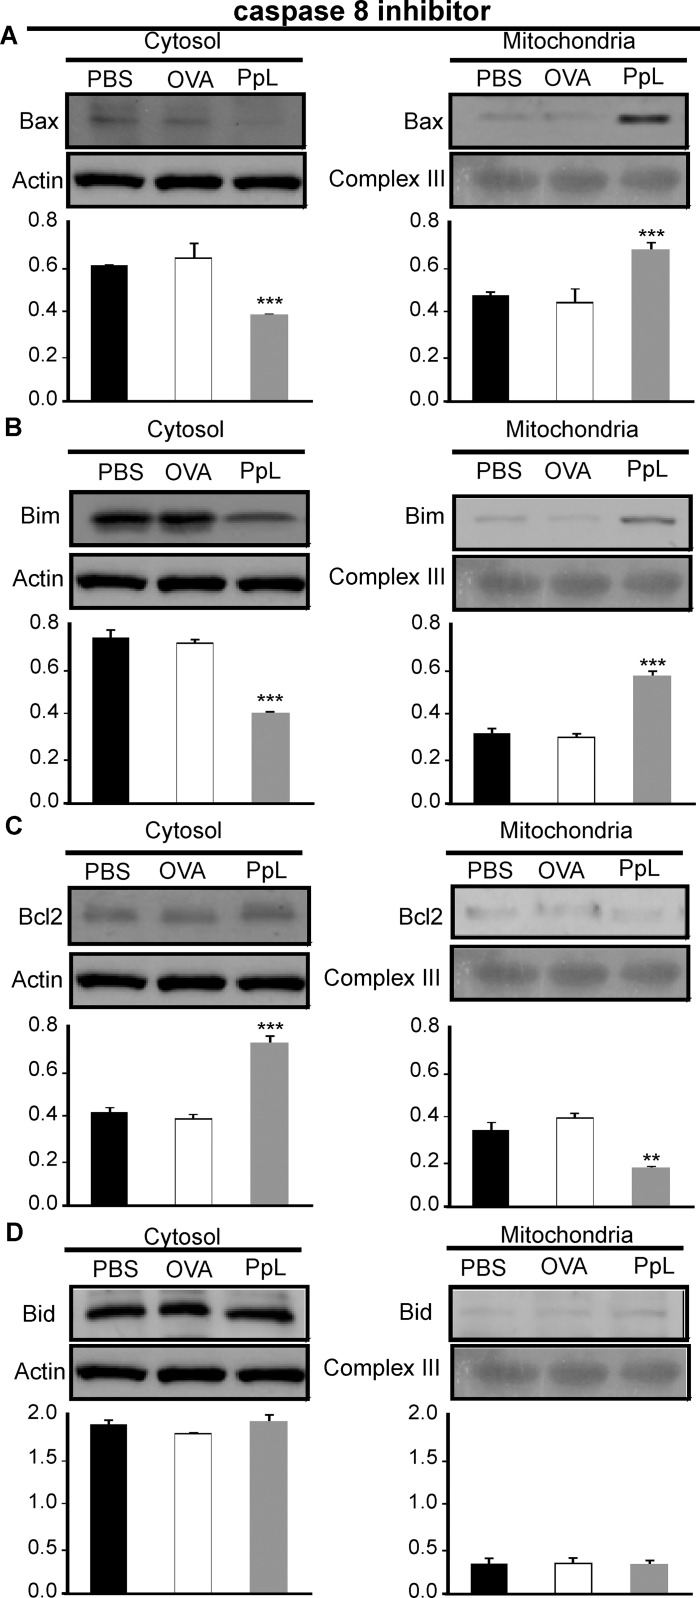 Effect of caspase-8 inhibitor on the PpL-induced translocation of Bax, Bim and Bcl-2 between the mitochondrial and cytosol compartments. Daudi cells pretreated with caspase-8 inhibitor were incubated with PpL (100 μg/ml), OVA (100 μg/ml) or PBS for 8 hs. Cell lysates containing cytosol and mitochondria fractions were prepared. Expression of Bax, Bim, Bcl-2 and Bid was analyzed by Western blotting. Membranes were sequentially blotted with anti-Bax (A) , anti-Bim (B) , anti-Bcl-2 (C) , anti-Bid (D) , anti-actin or anti III complex antibodies. Images of representative Western blots are shown. The optical density of Bax, Bim, Bcl-2 and Bid bands was quantified and normalized to actin or III complex. The relative levels are shown. Data are presented as the mean ± SEM of three independent experiments, (** p